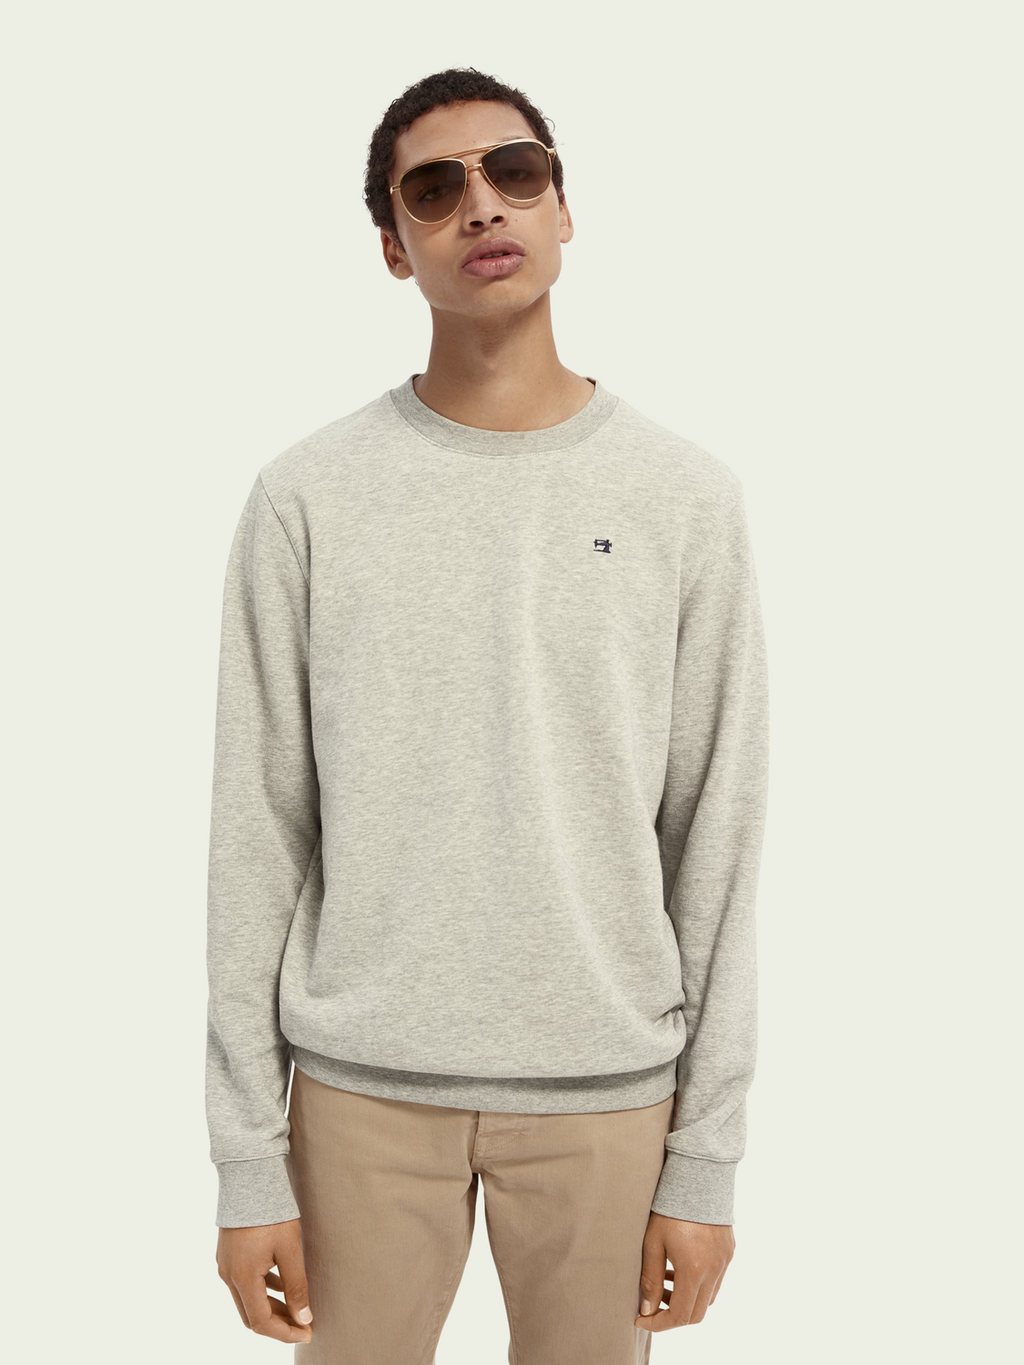 Scotch and Soda Sweatshirt in grey. Simple and basic wardrobe essential